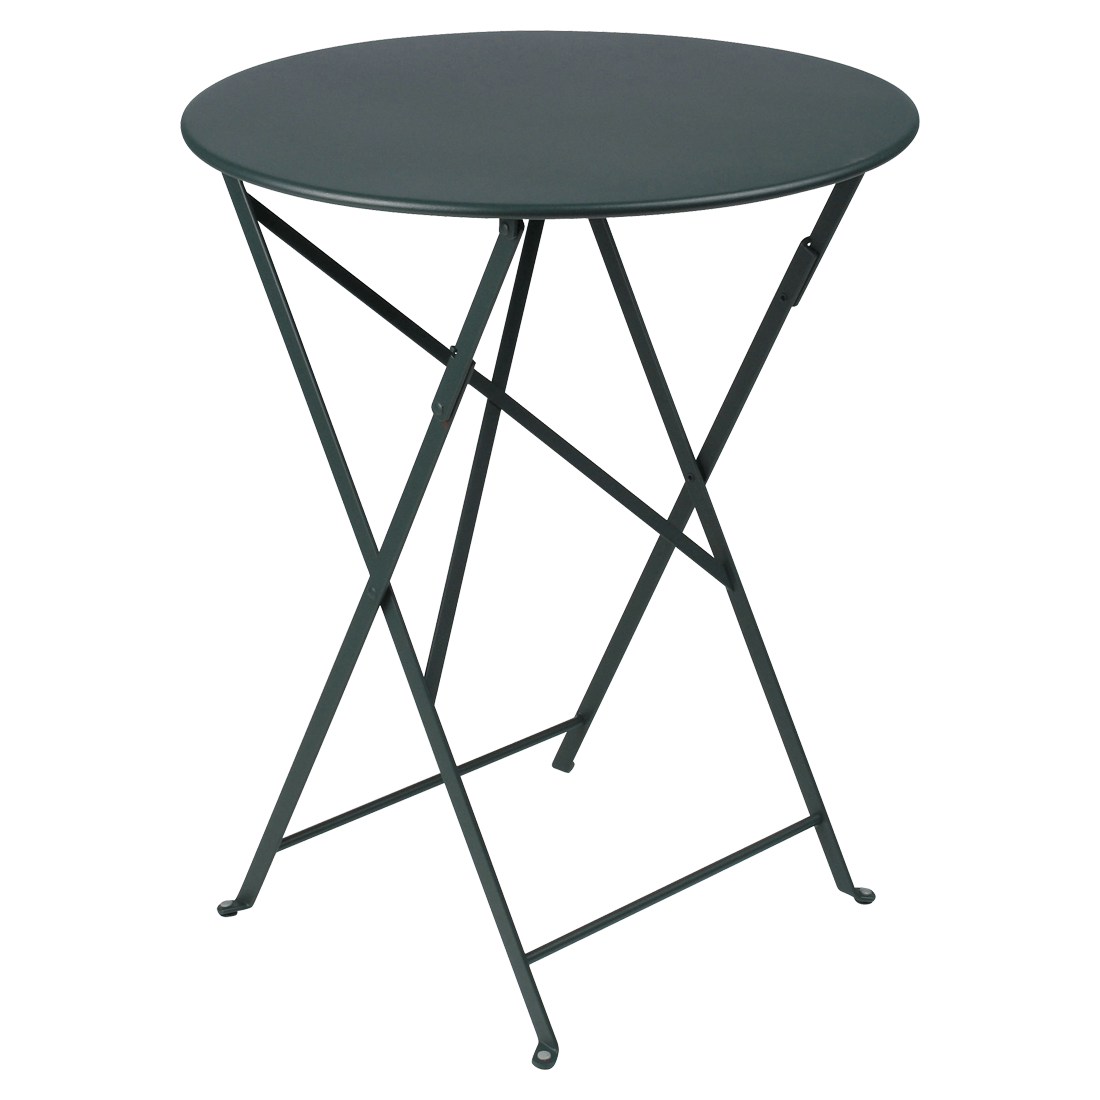 Bistro Folding Table - Cedar Green Table Fermob